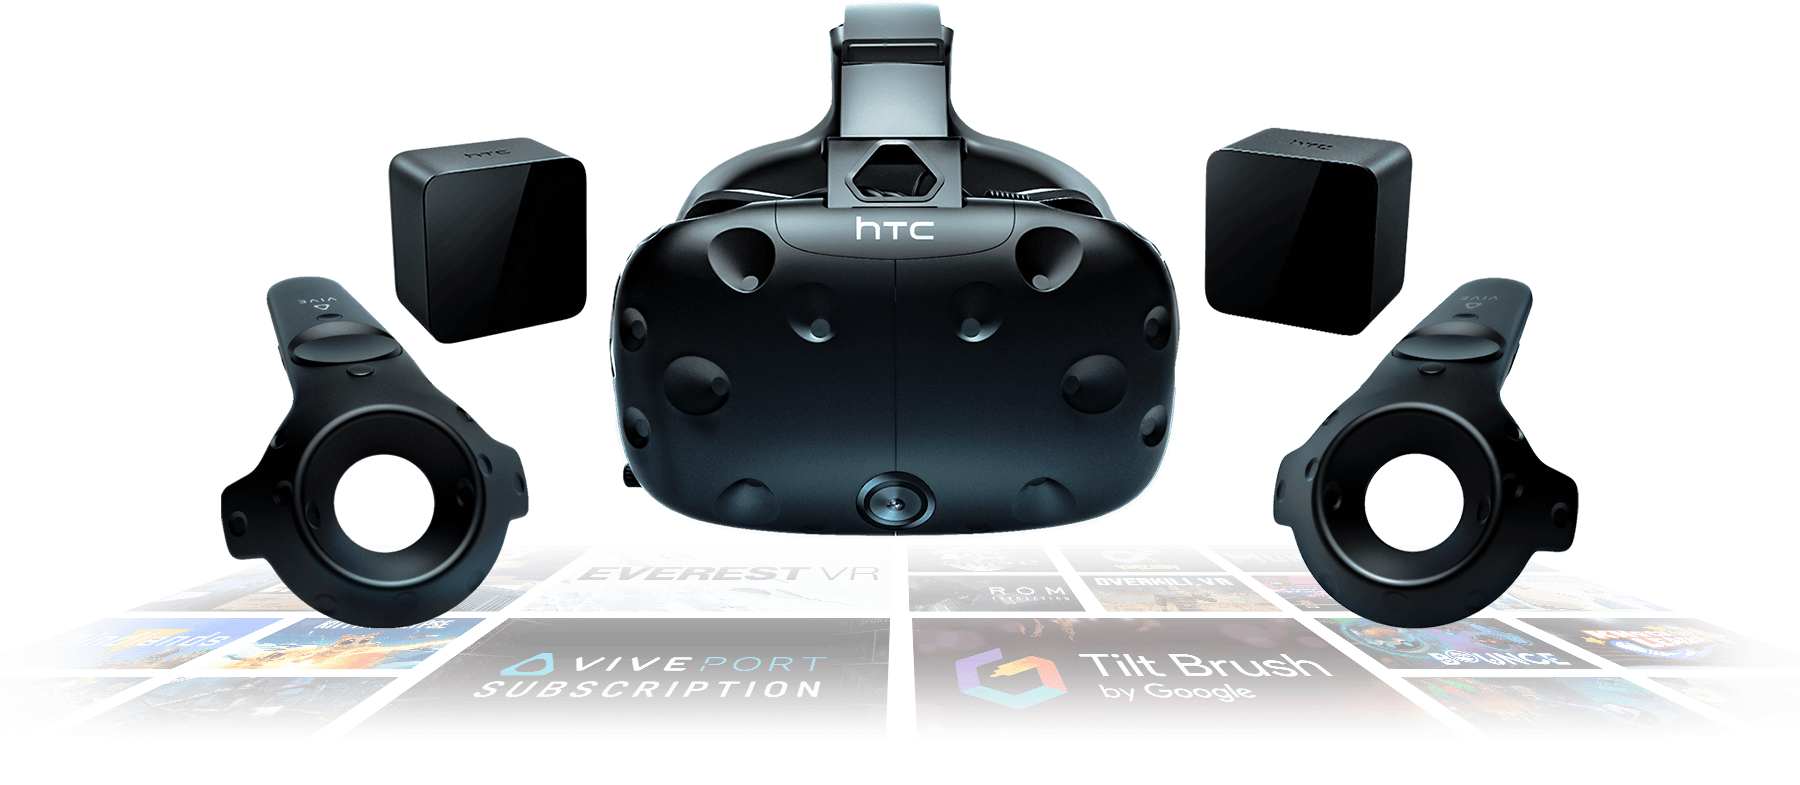 Fallout 4 VR pre-order included in HTC Vive Purchase $599